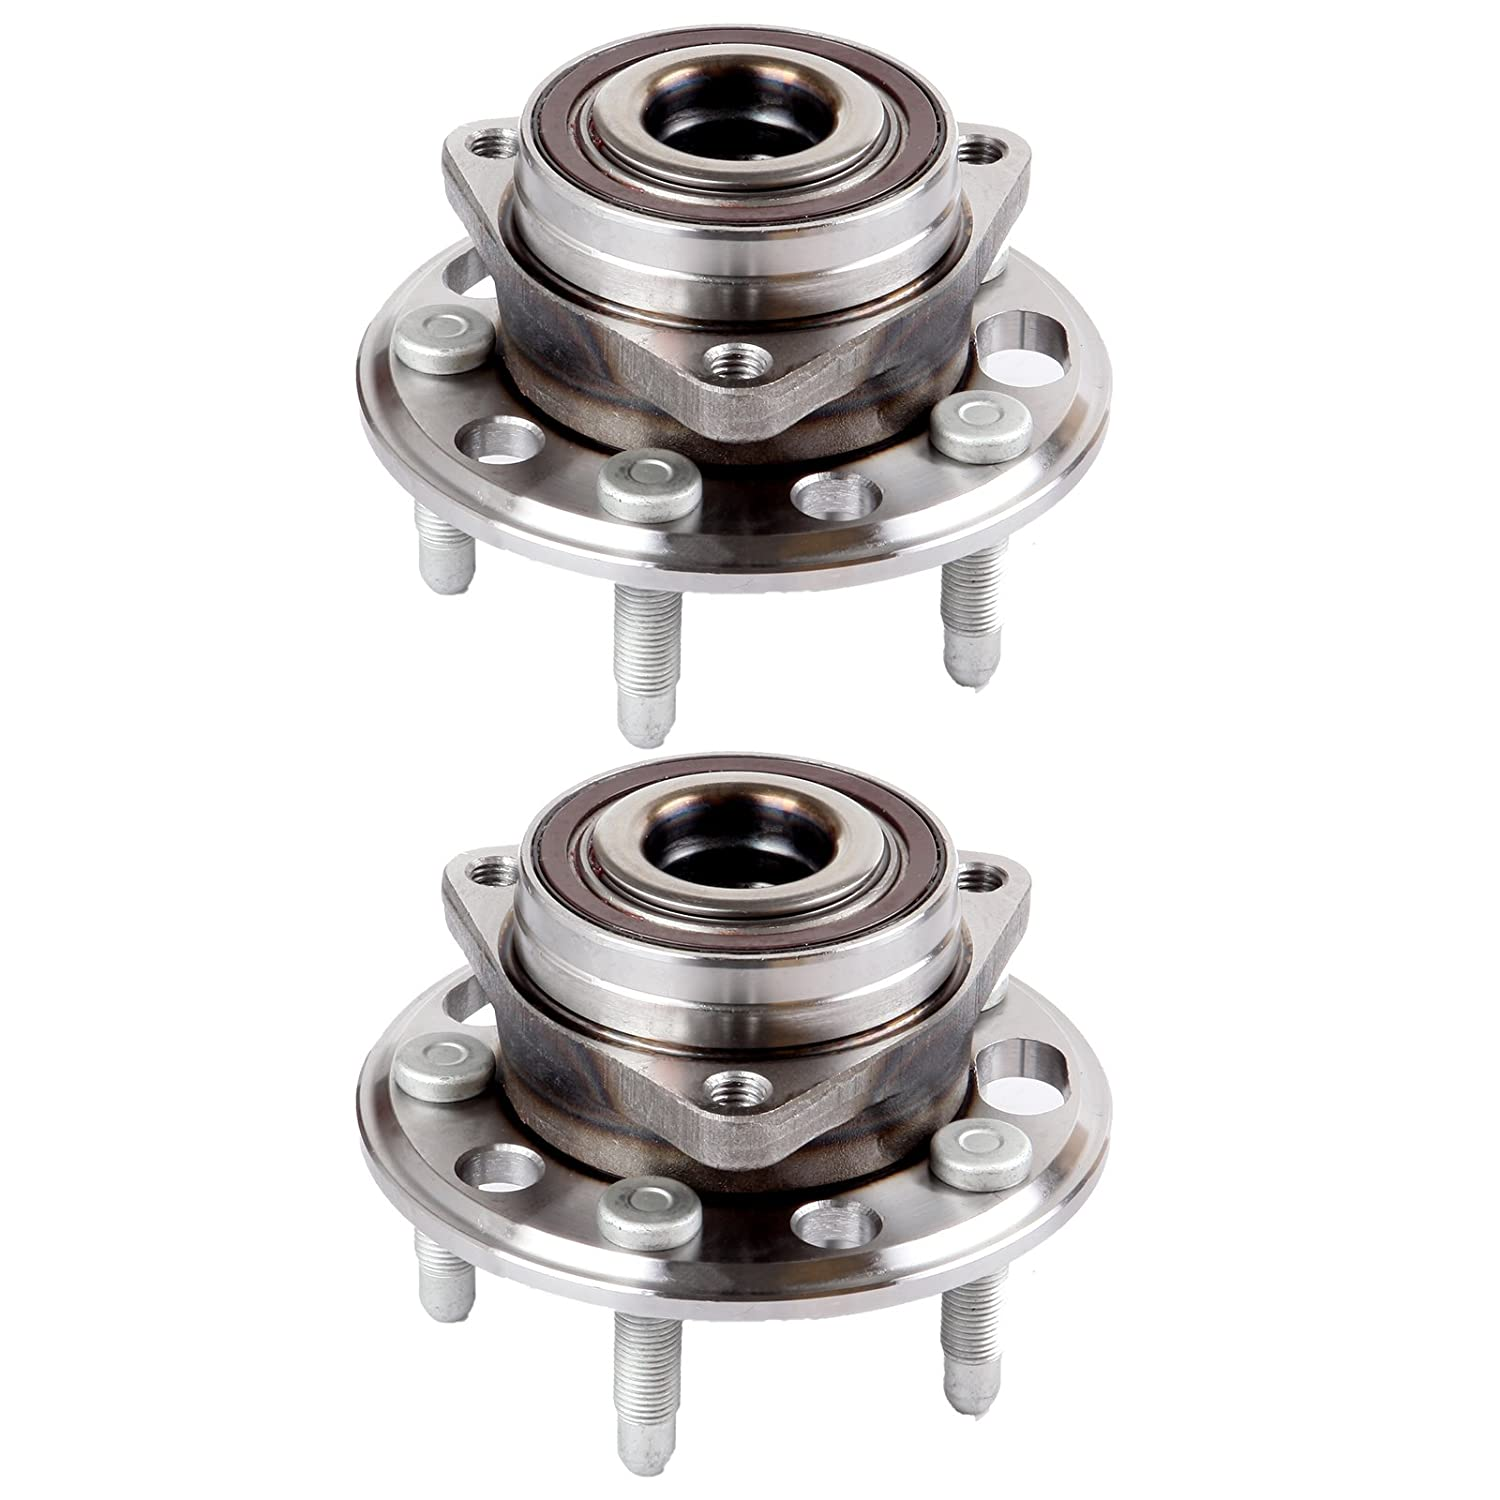 ECCPP Replacement for Pair of 2 New Complete Front Wheel Hub Bearing Assembly 5 Lugs w/ABS for 2010-2016 Buick Chevy 513288x2